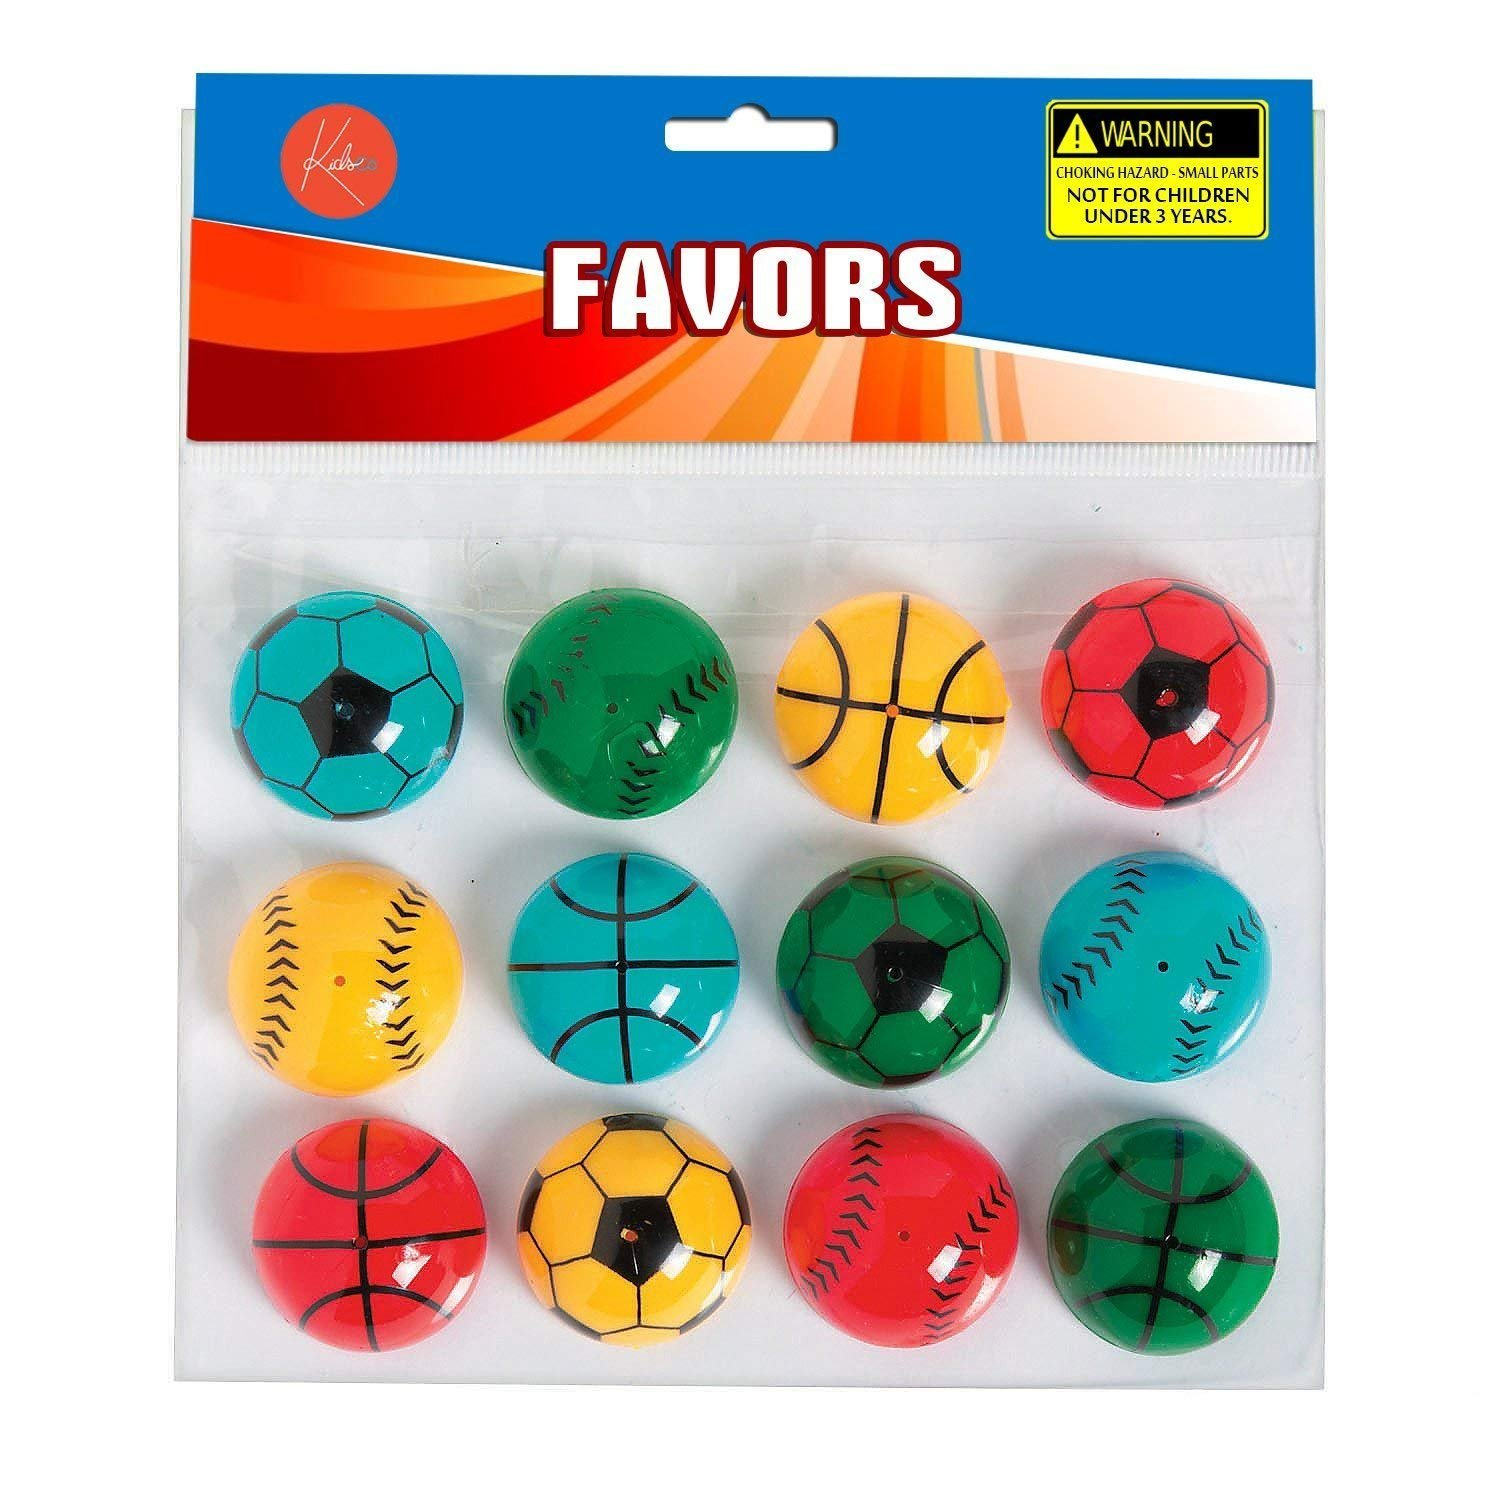 For Kids Great Party Favors Pack Of 12 Bag Stuffers Assorted Vibrant Colors Sports Balls Designed Poppers Prize Toy Fun Pi/ñata Fillers Sports Pop Up Poppers 1.25 Inches Gift Kayco USA